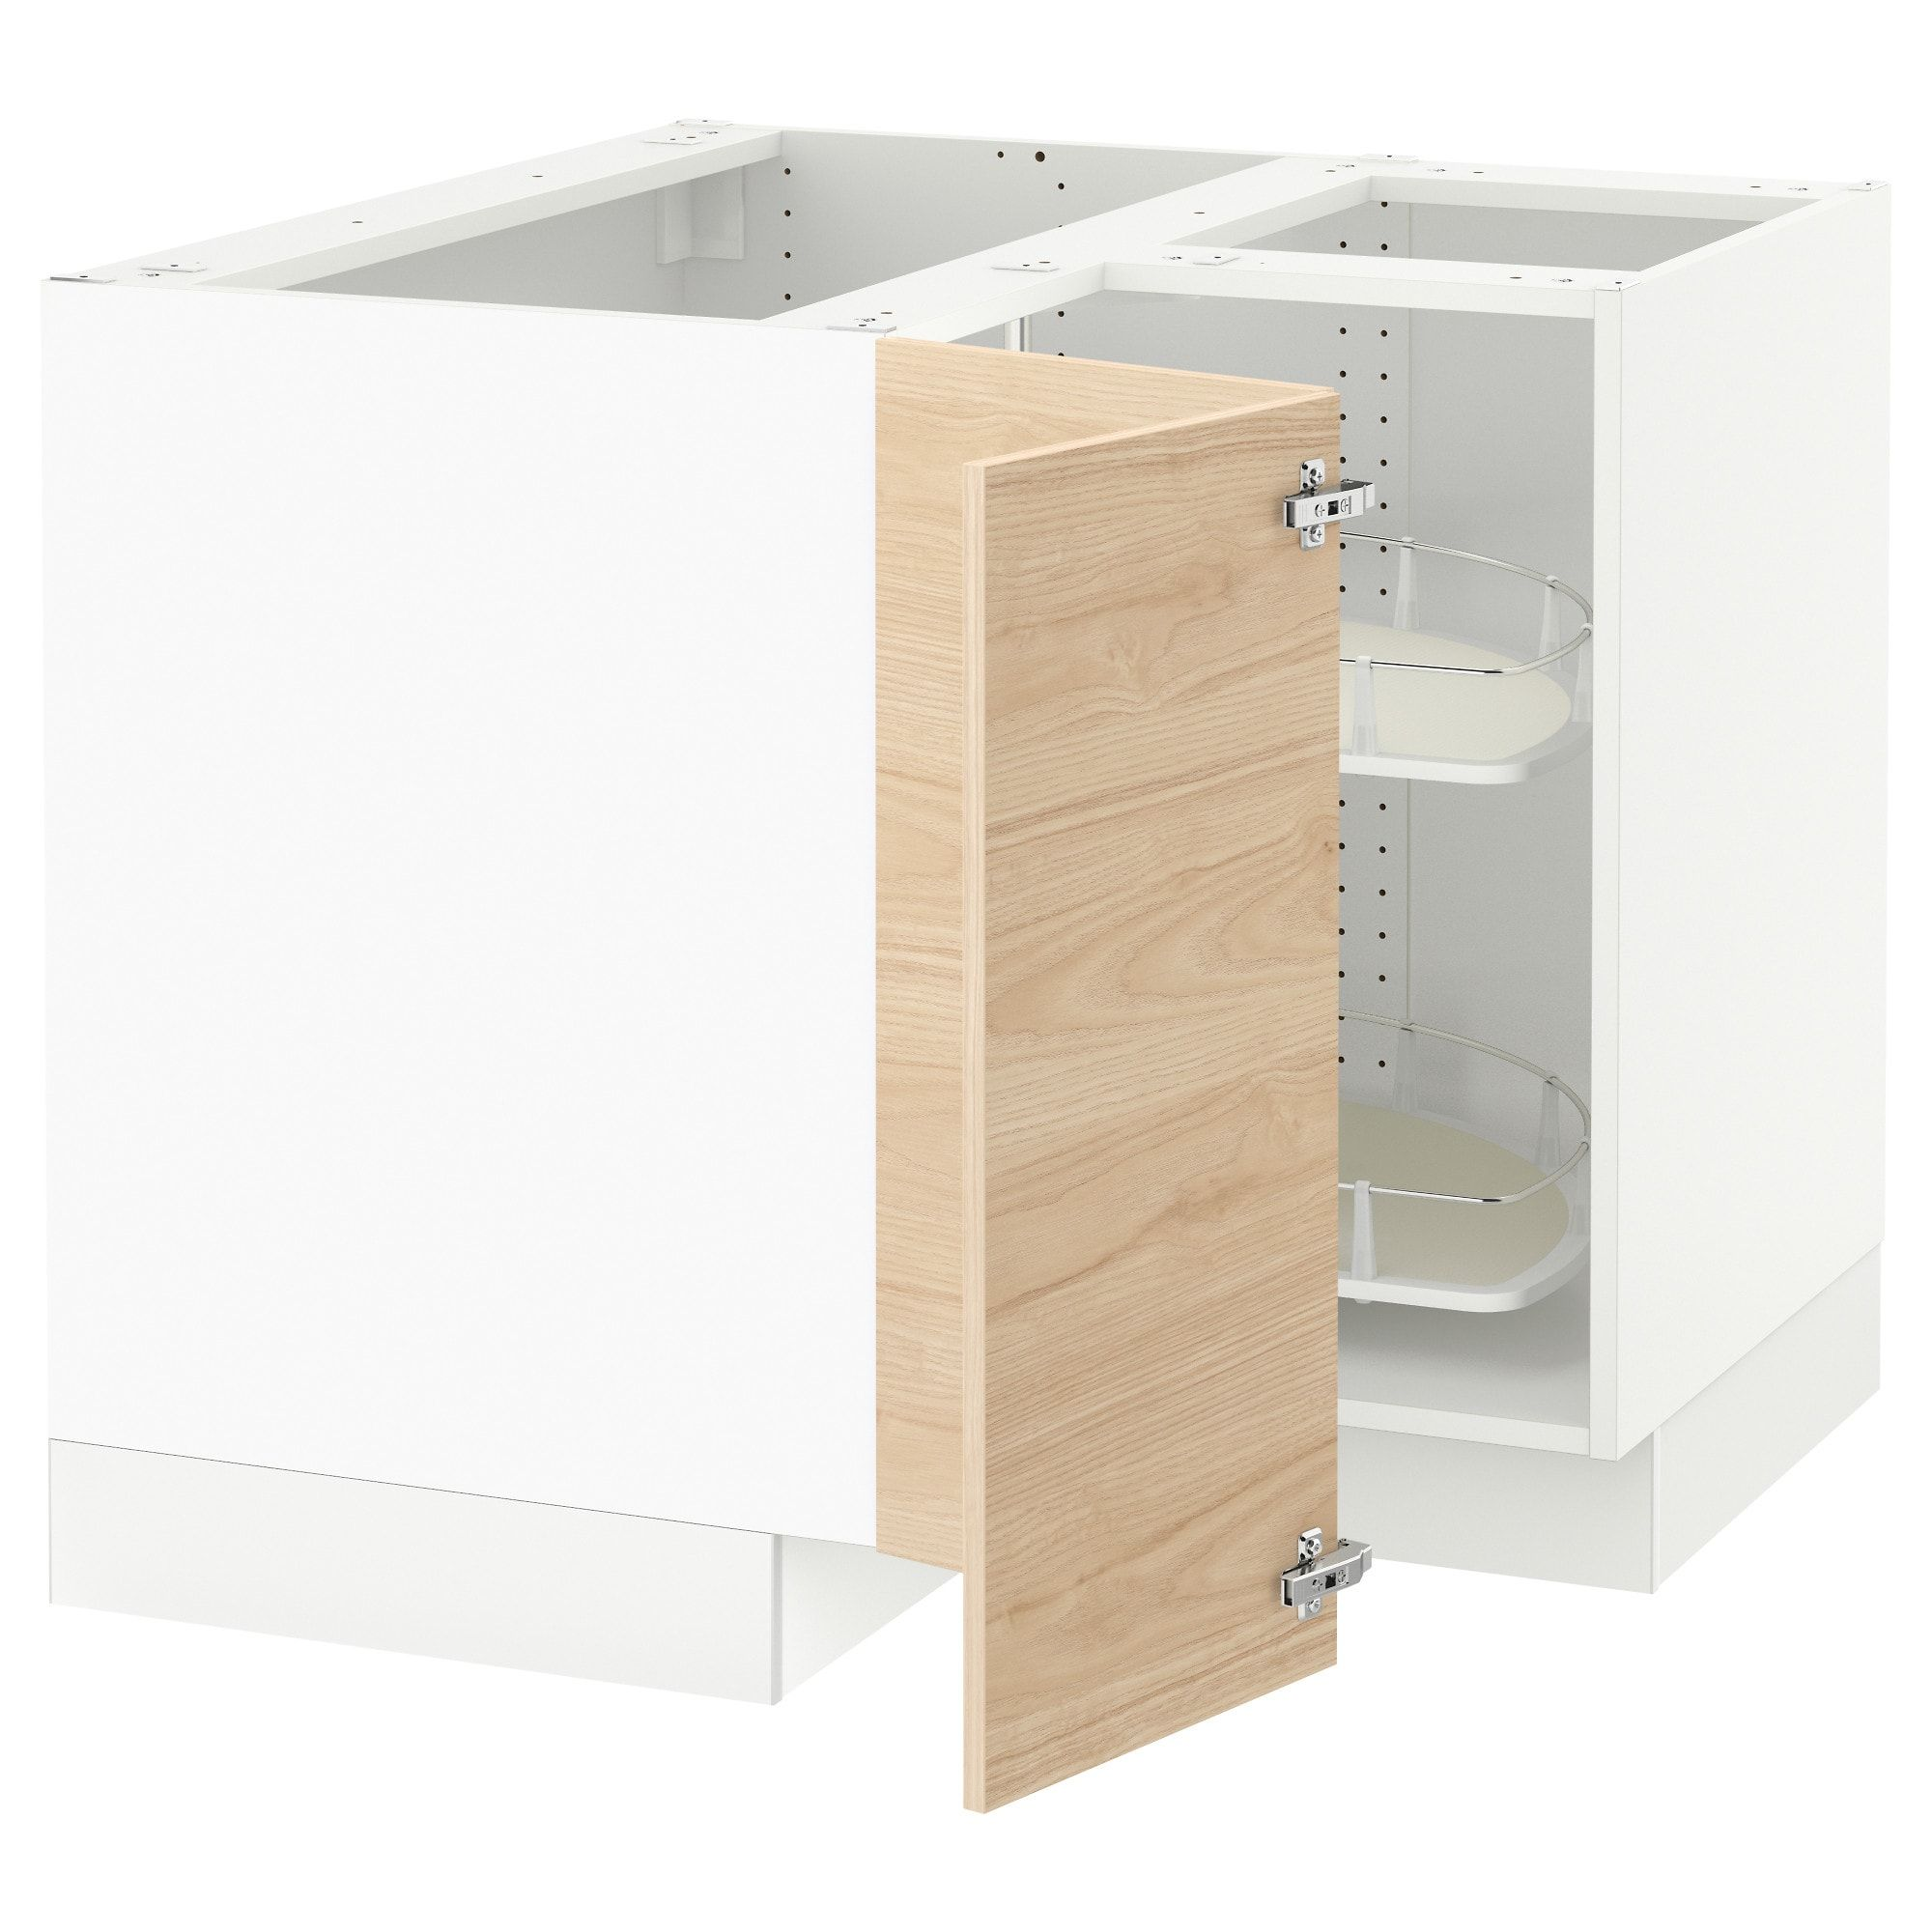 Ikea RATIONELL Wall corner cabinet